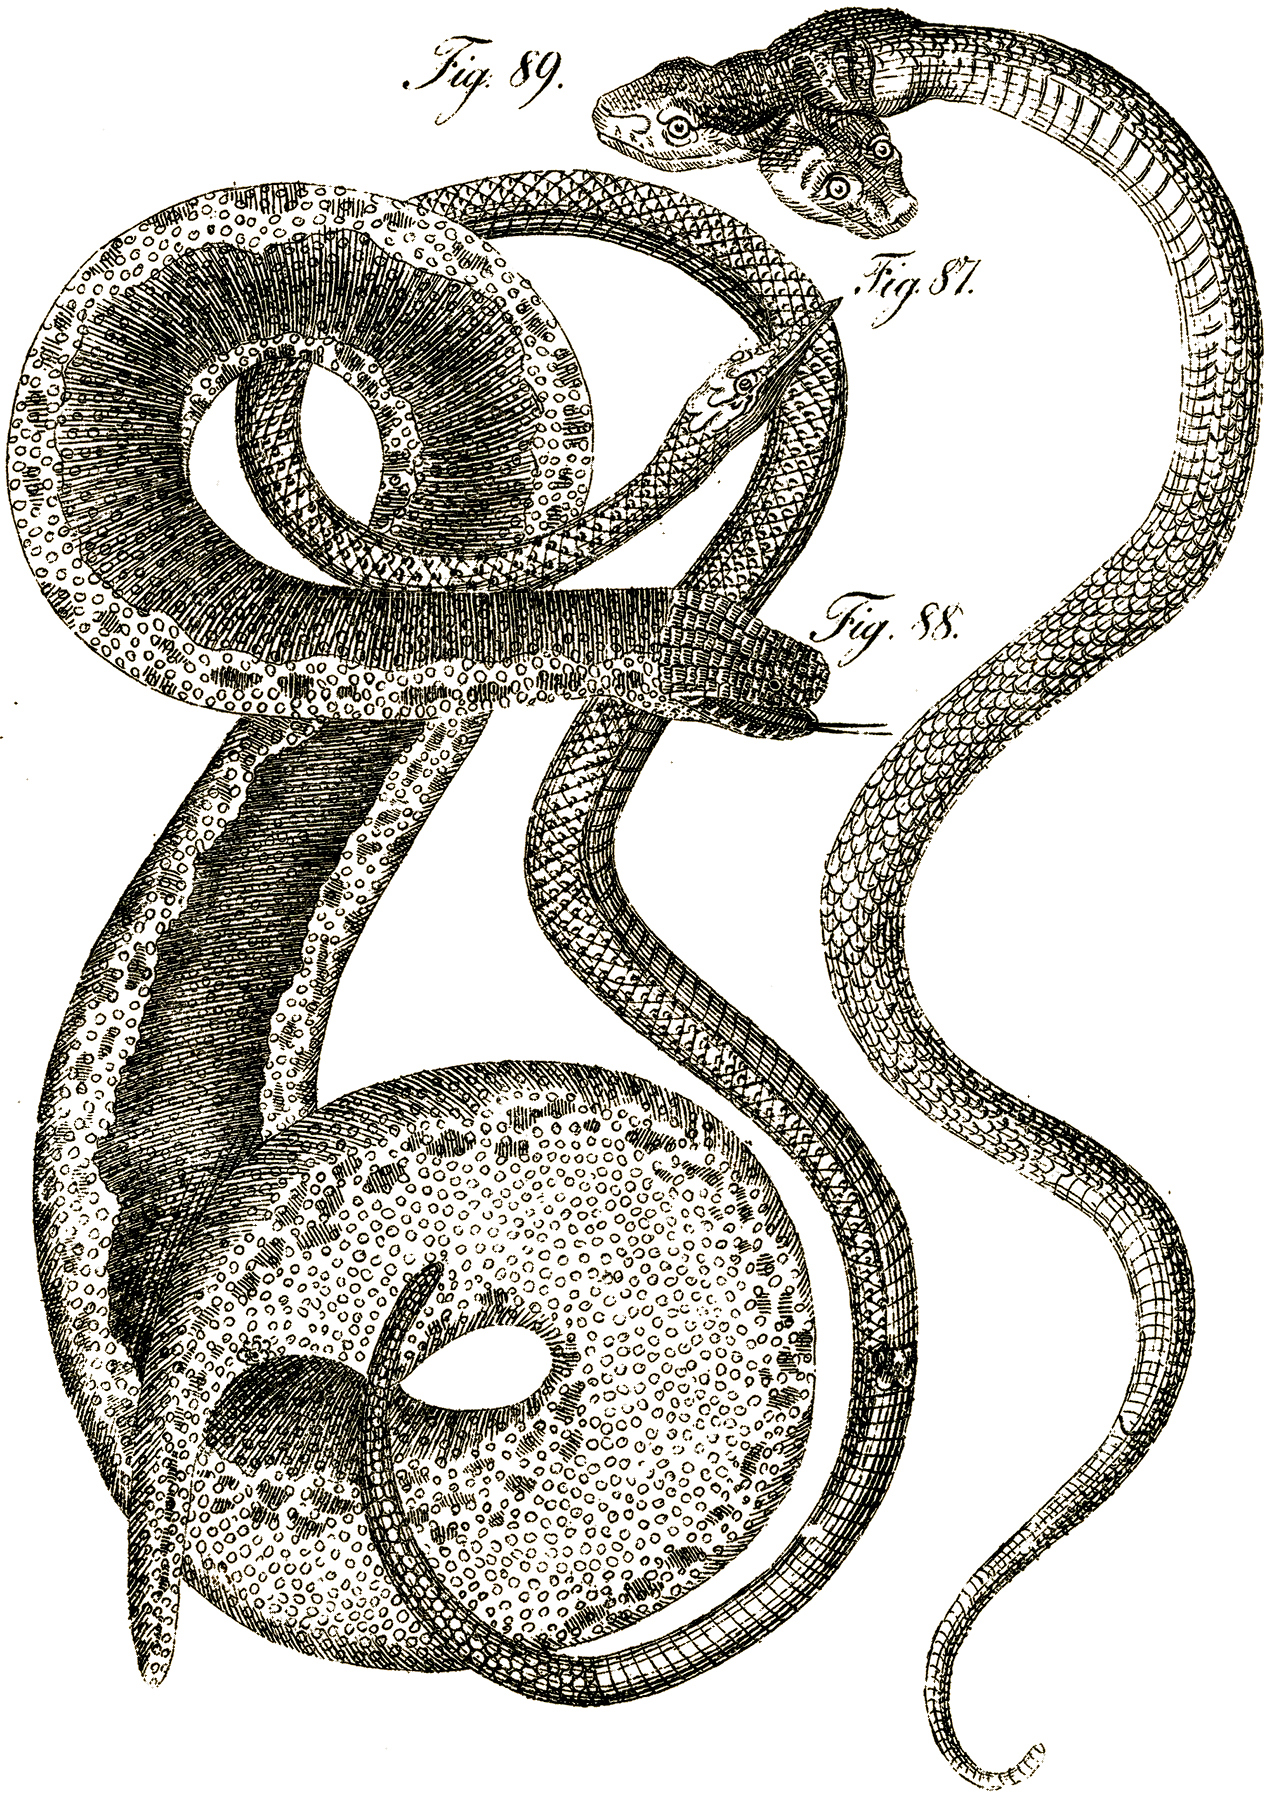 Two Headed Snake 8 Snake Images Halloween The